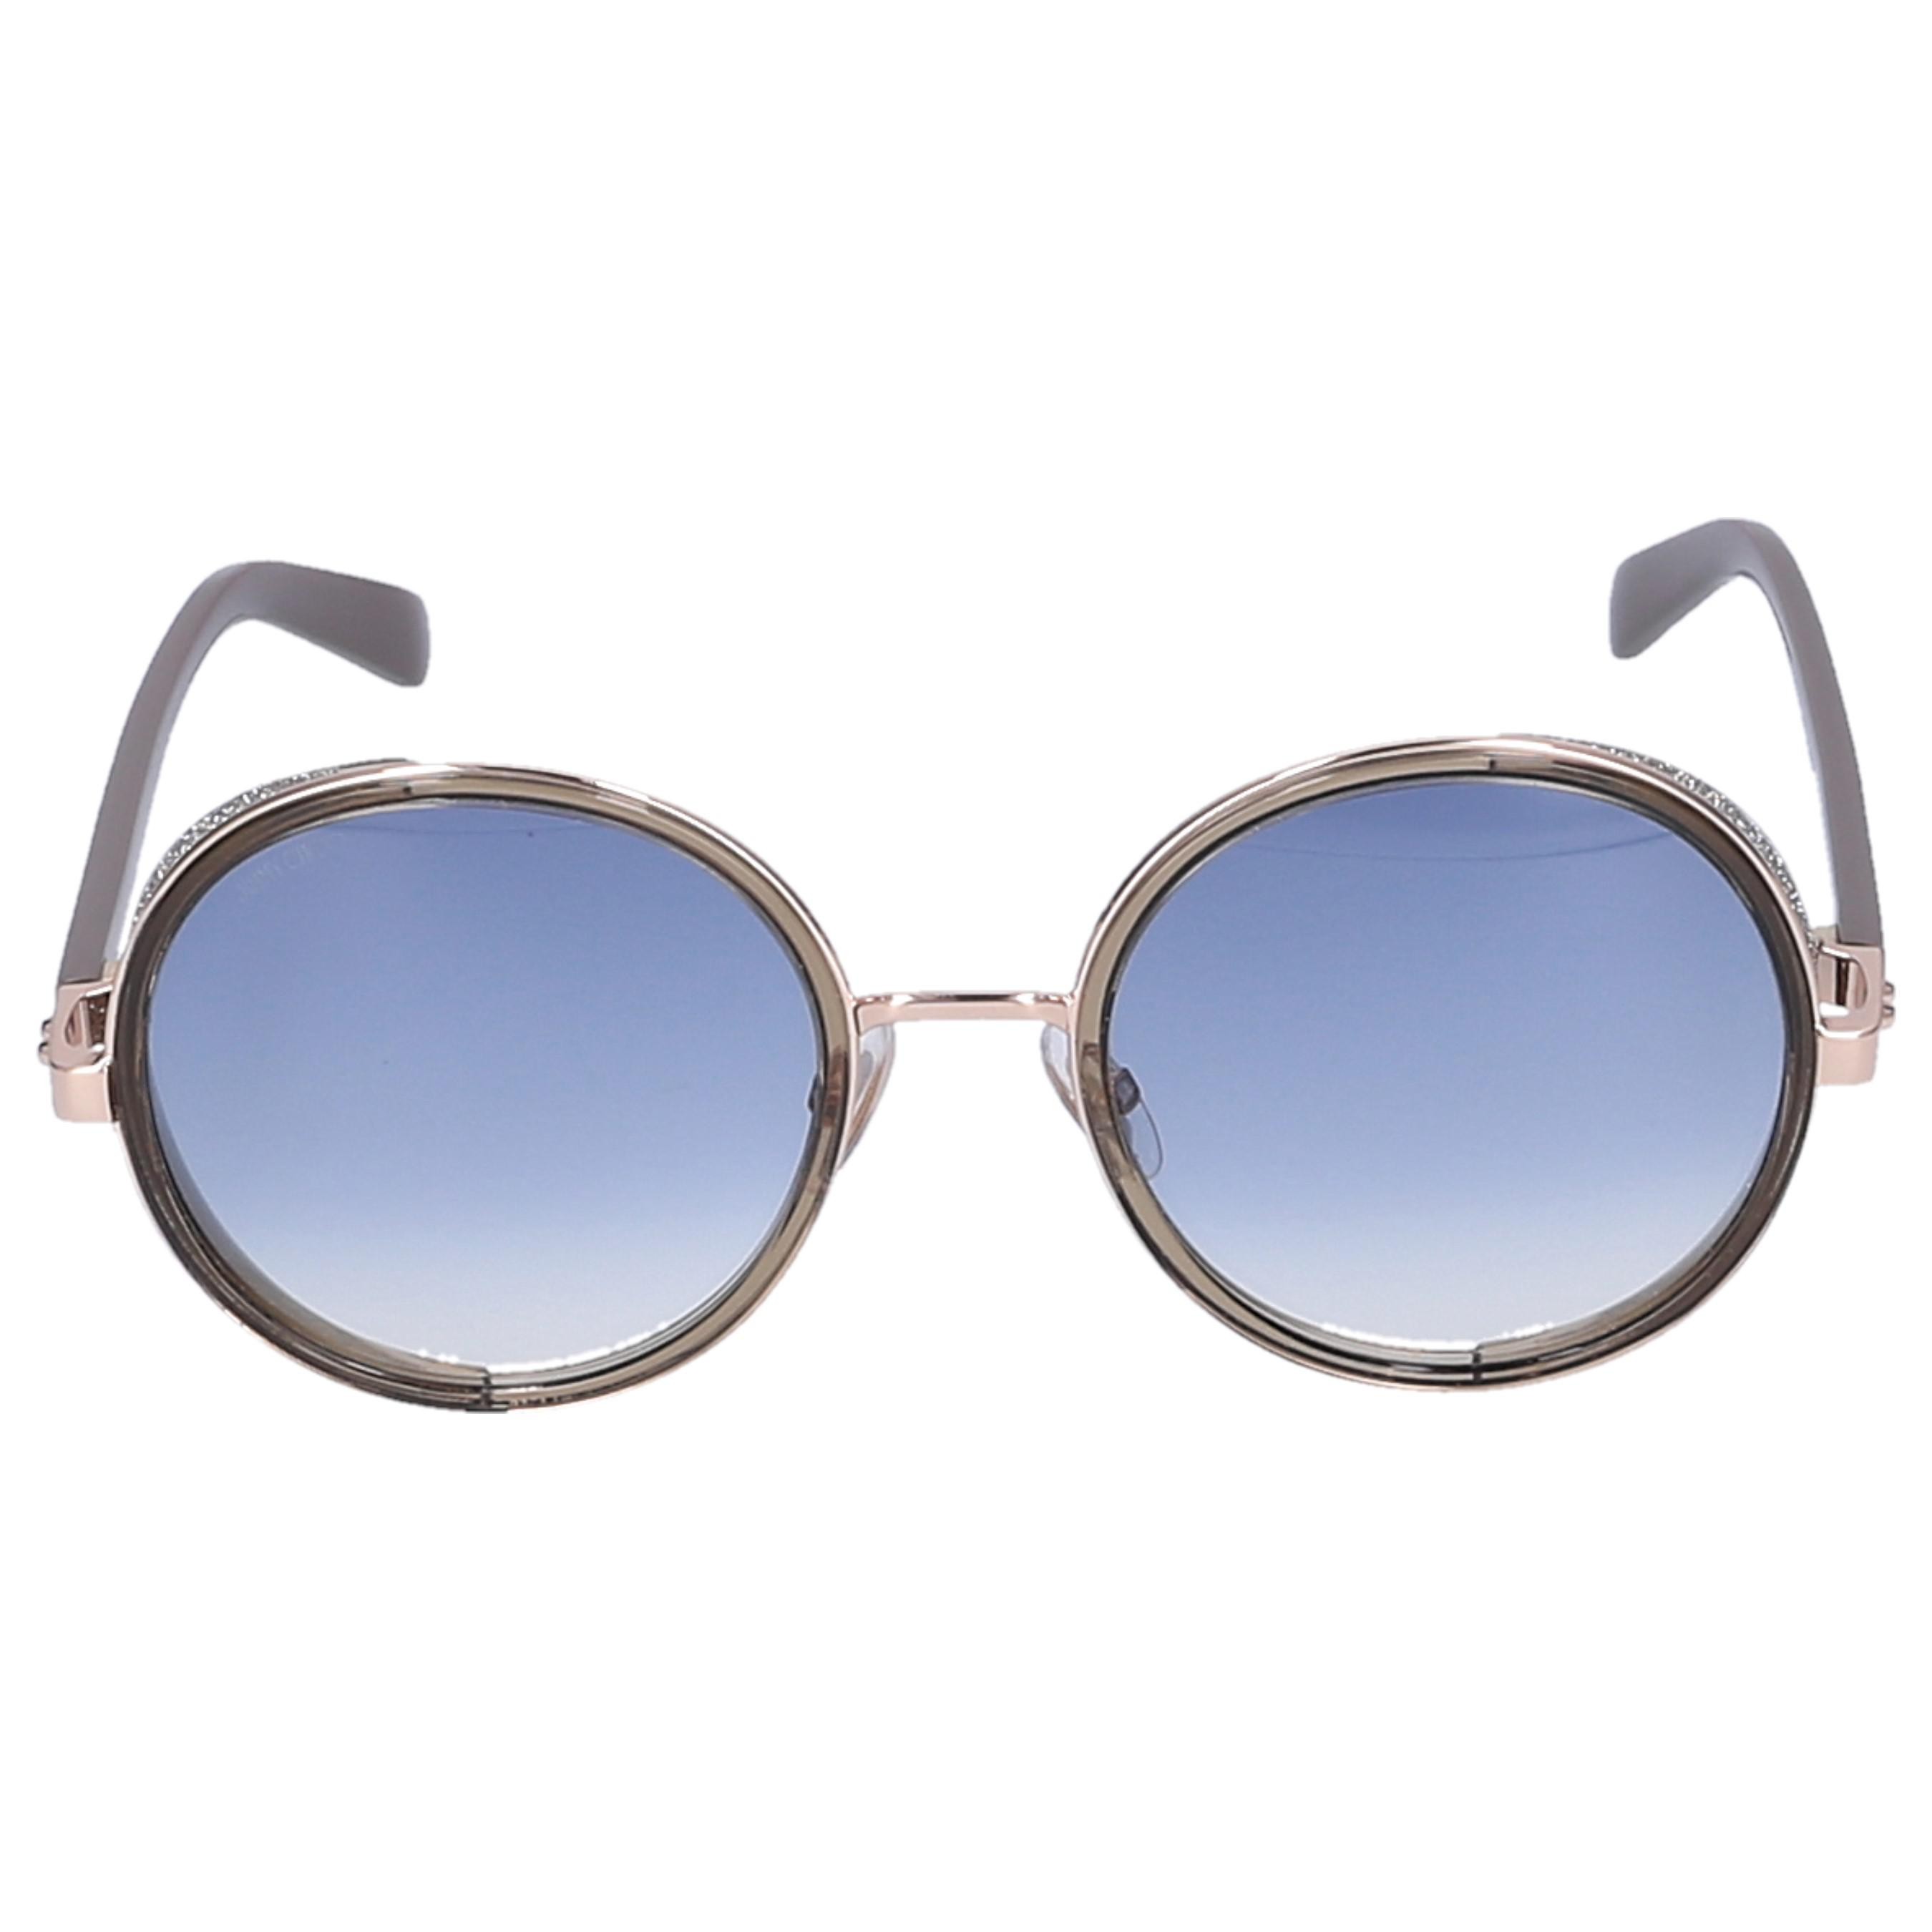 02c270ee435 Lyst - Jimmy Choo Sunglasses Round Andie Metal Grey